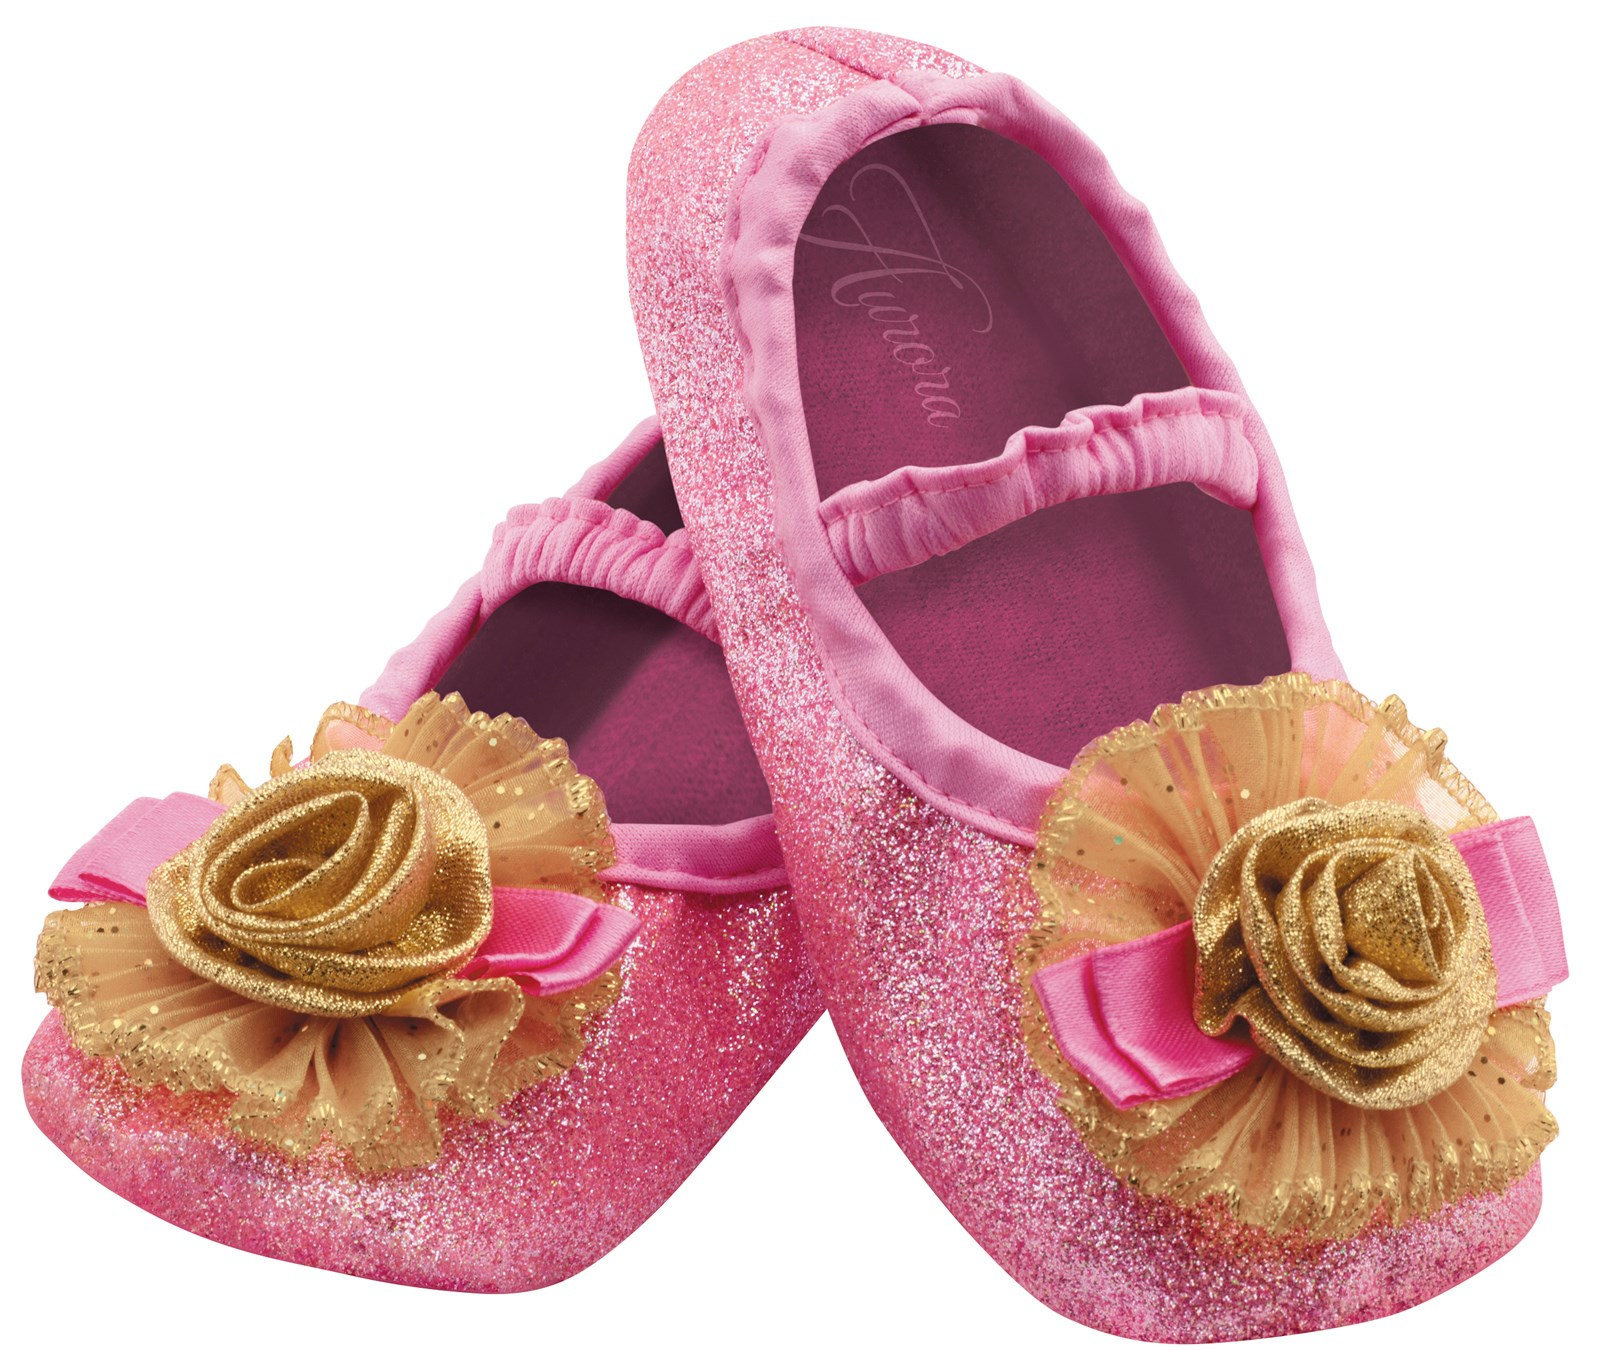 Disney Princess Aurora Slippers For Toddlers